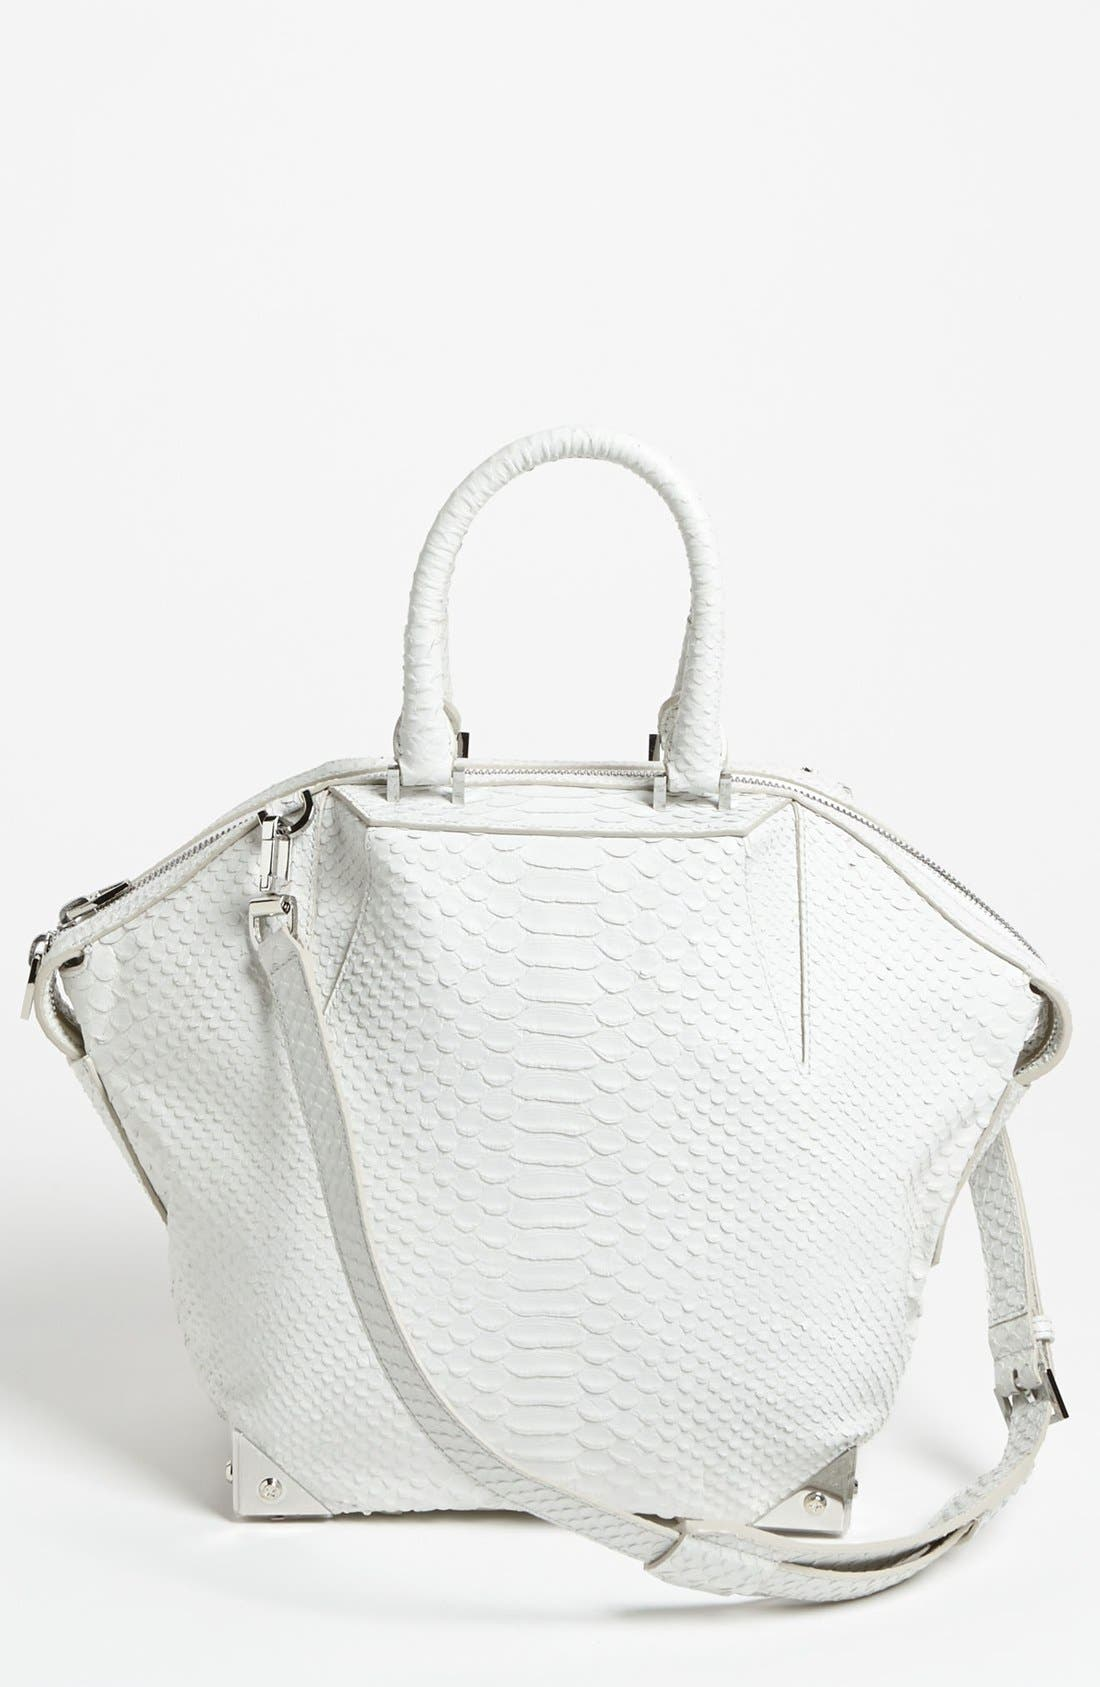 Main Image - Alexander Wang 'Emile - Small Prisma' Python Embossed Leather Tote